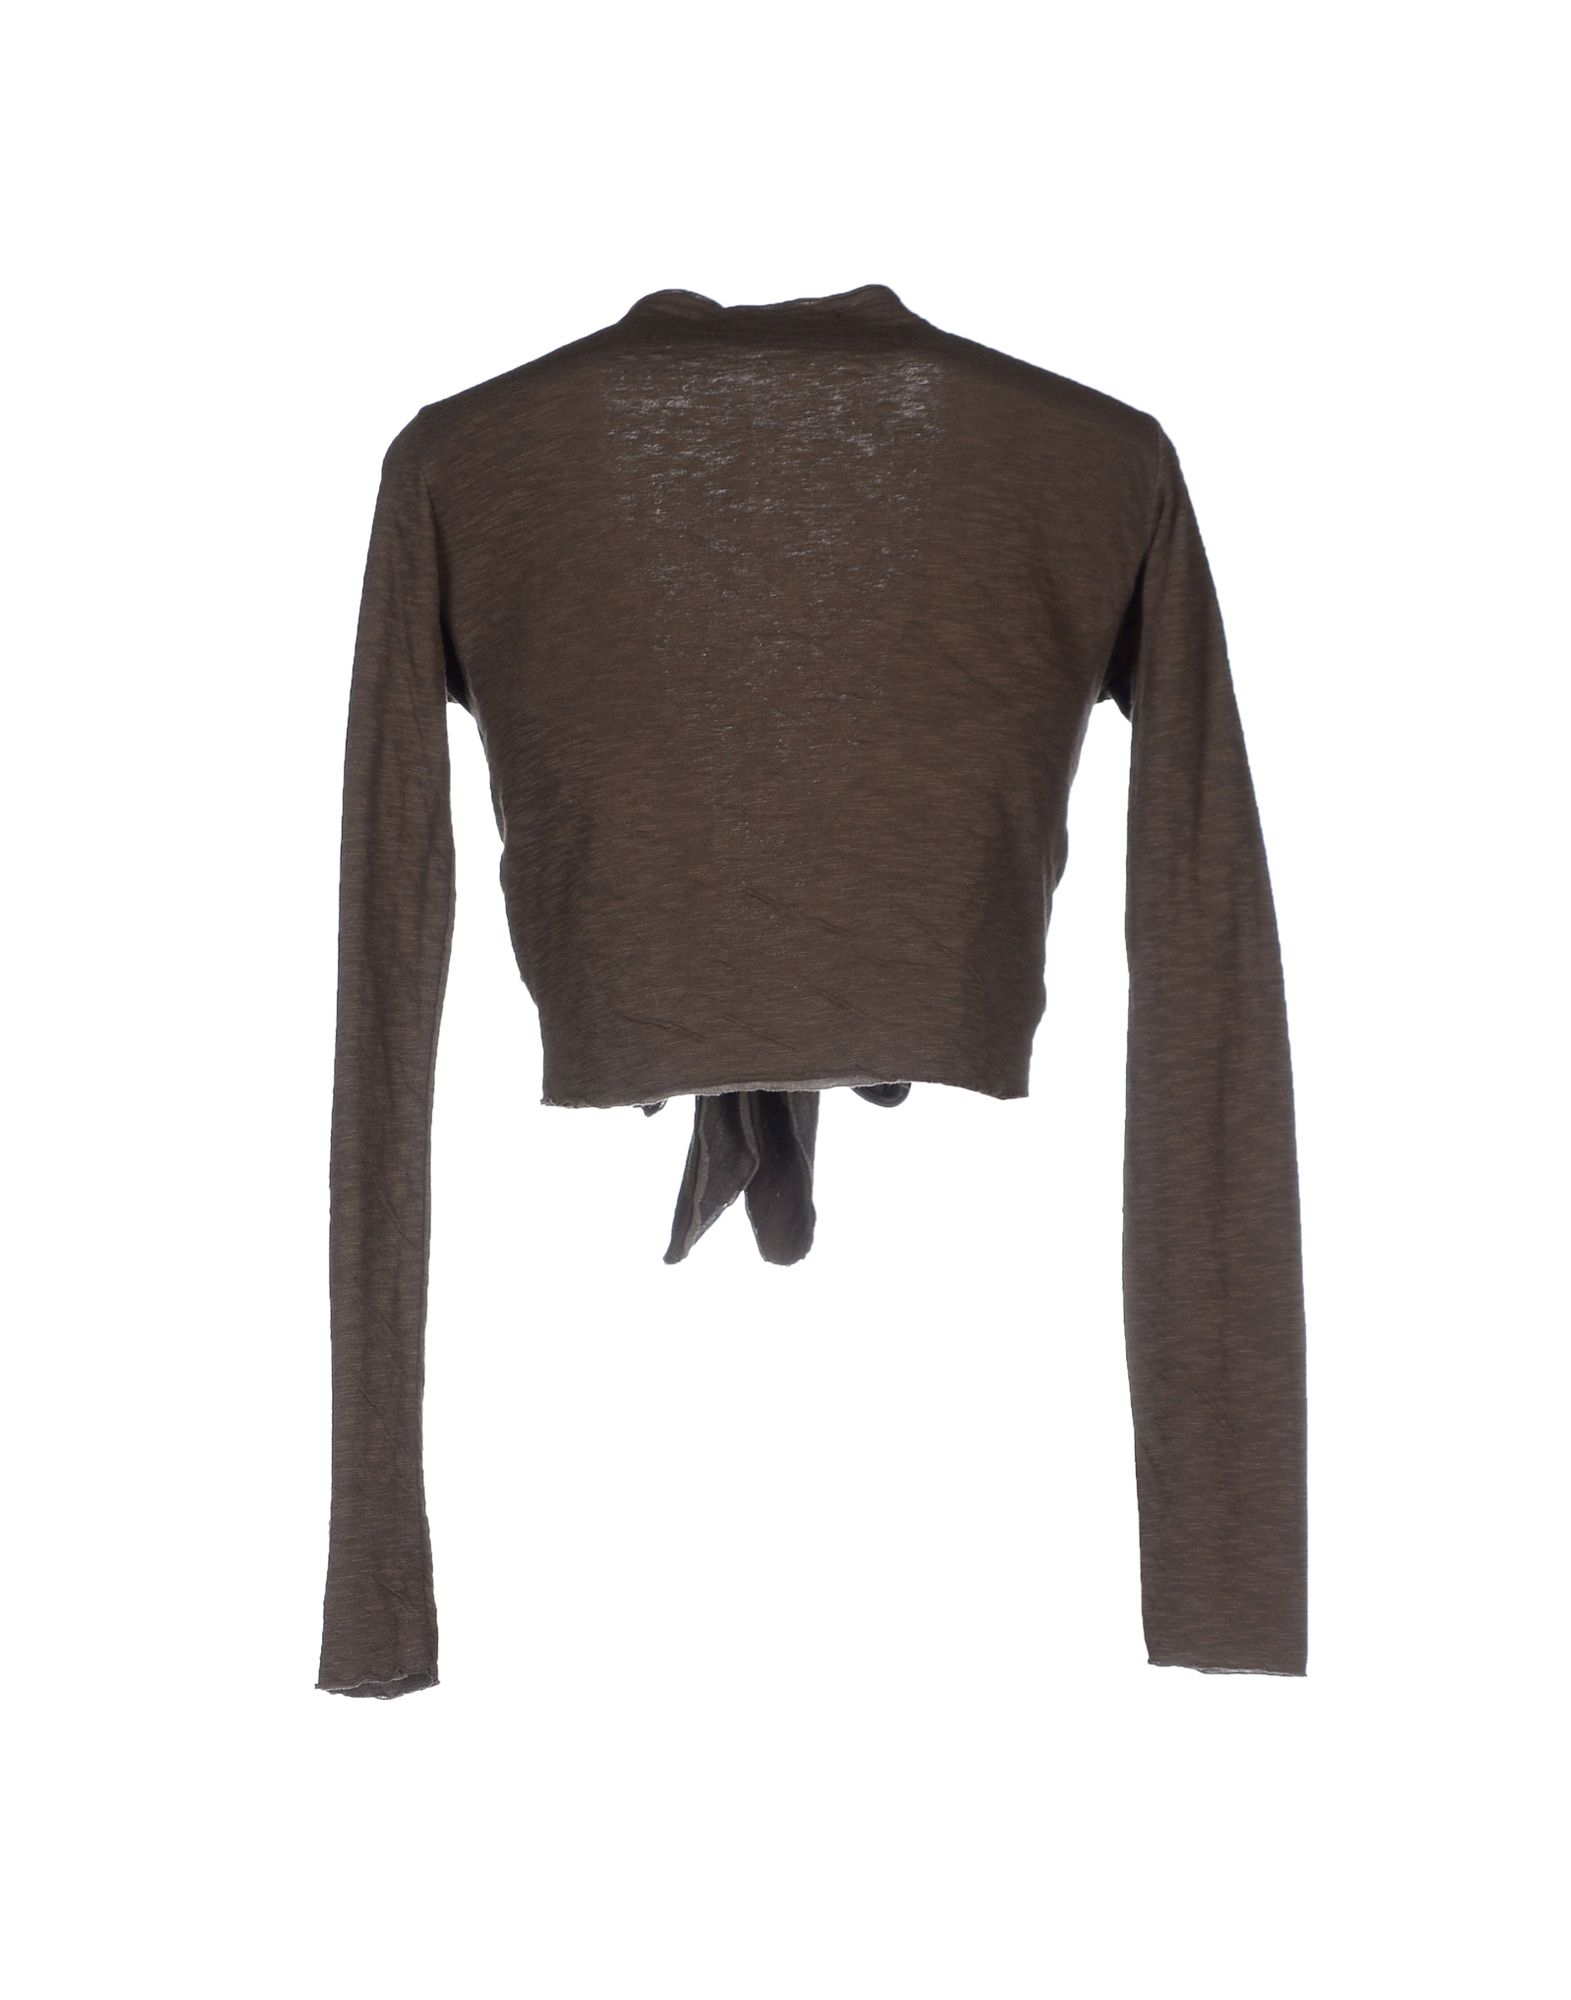 Massimo rebecchi Wrap Cardigans in Brown | Lyst